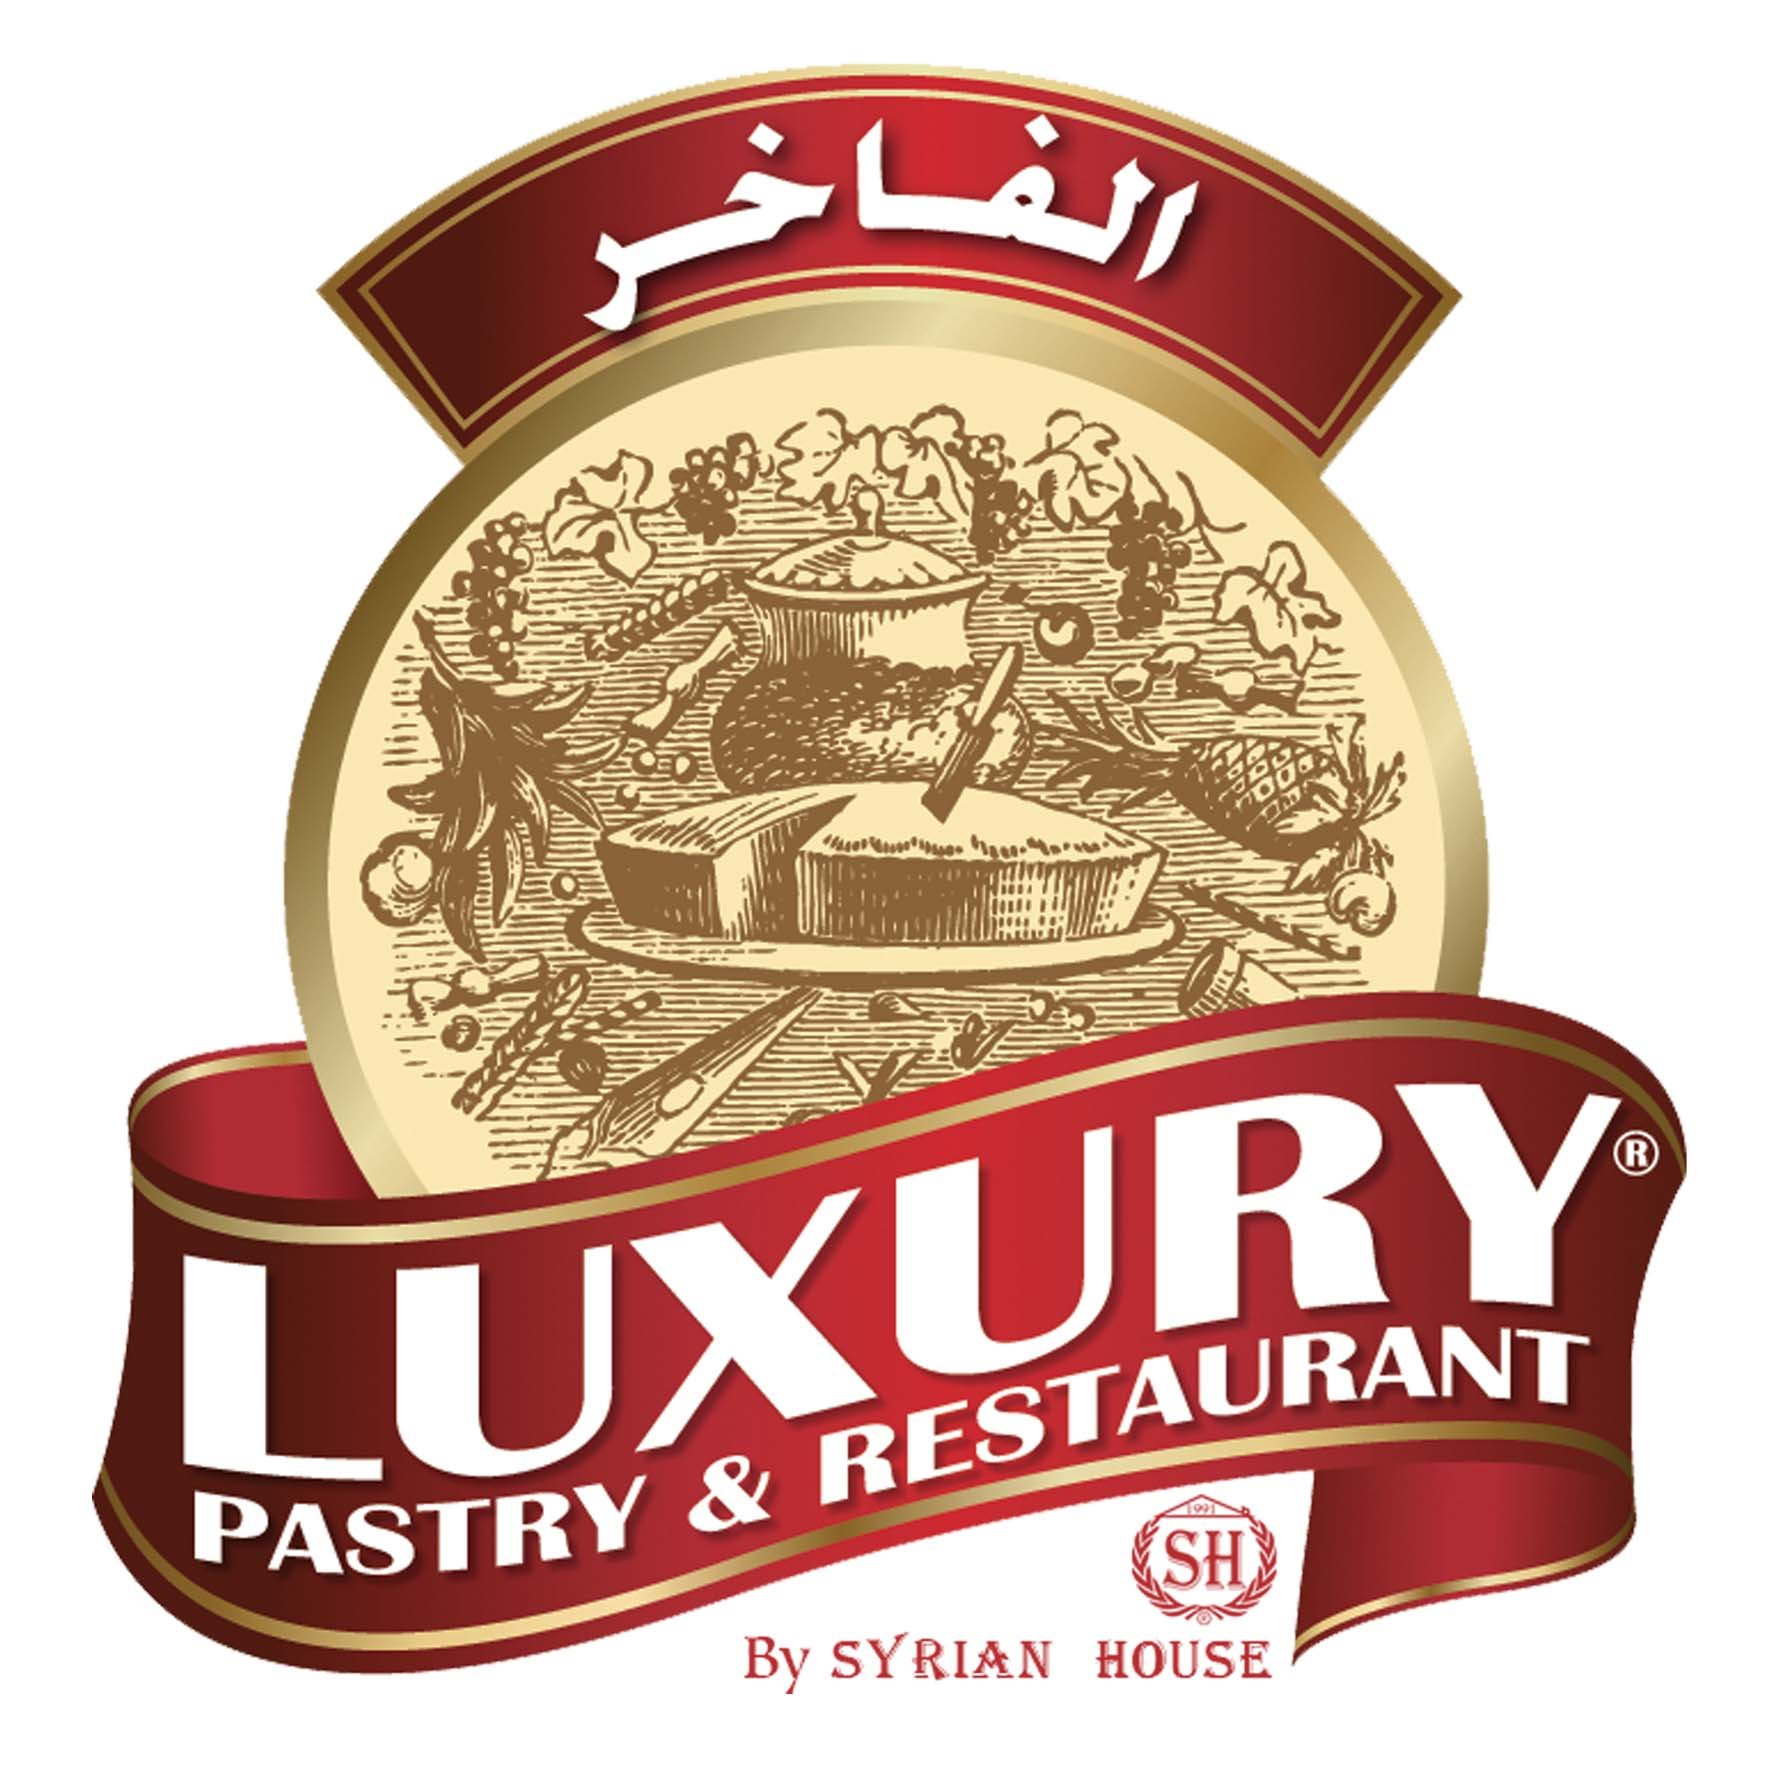 Luxury Pastry Restaurant